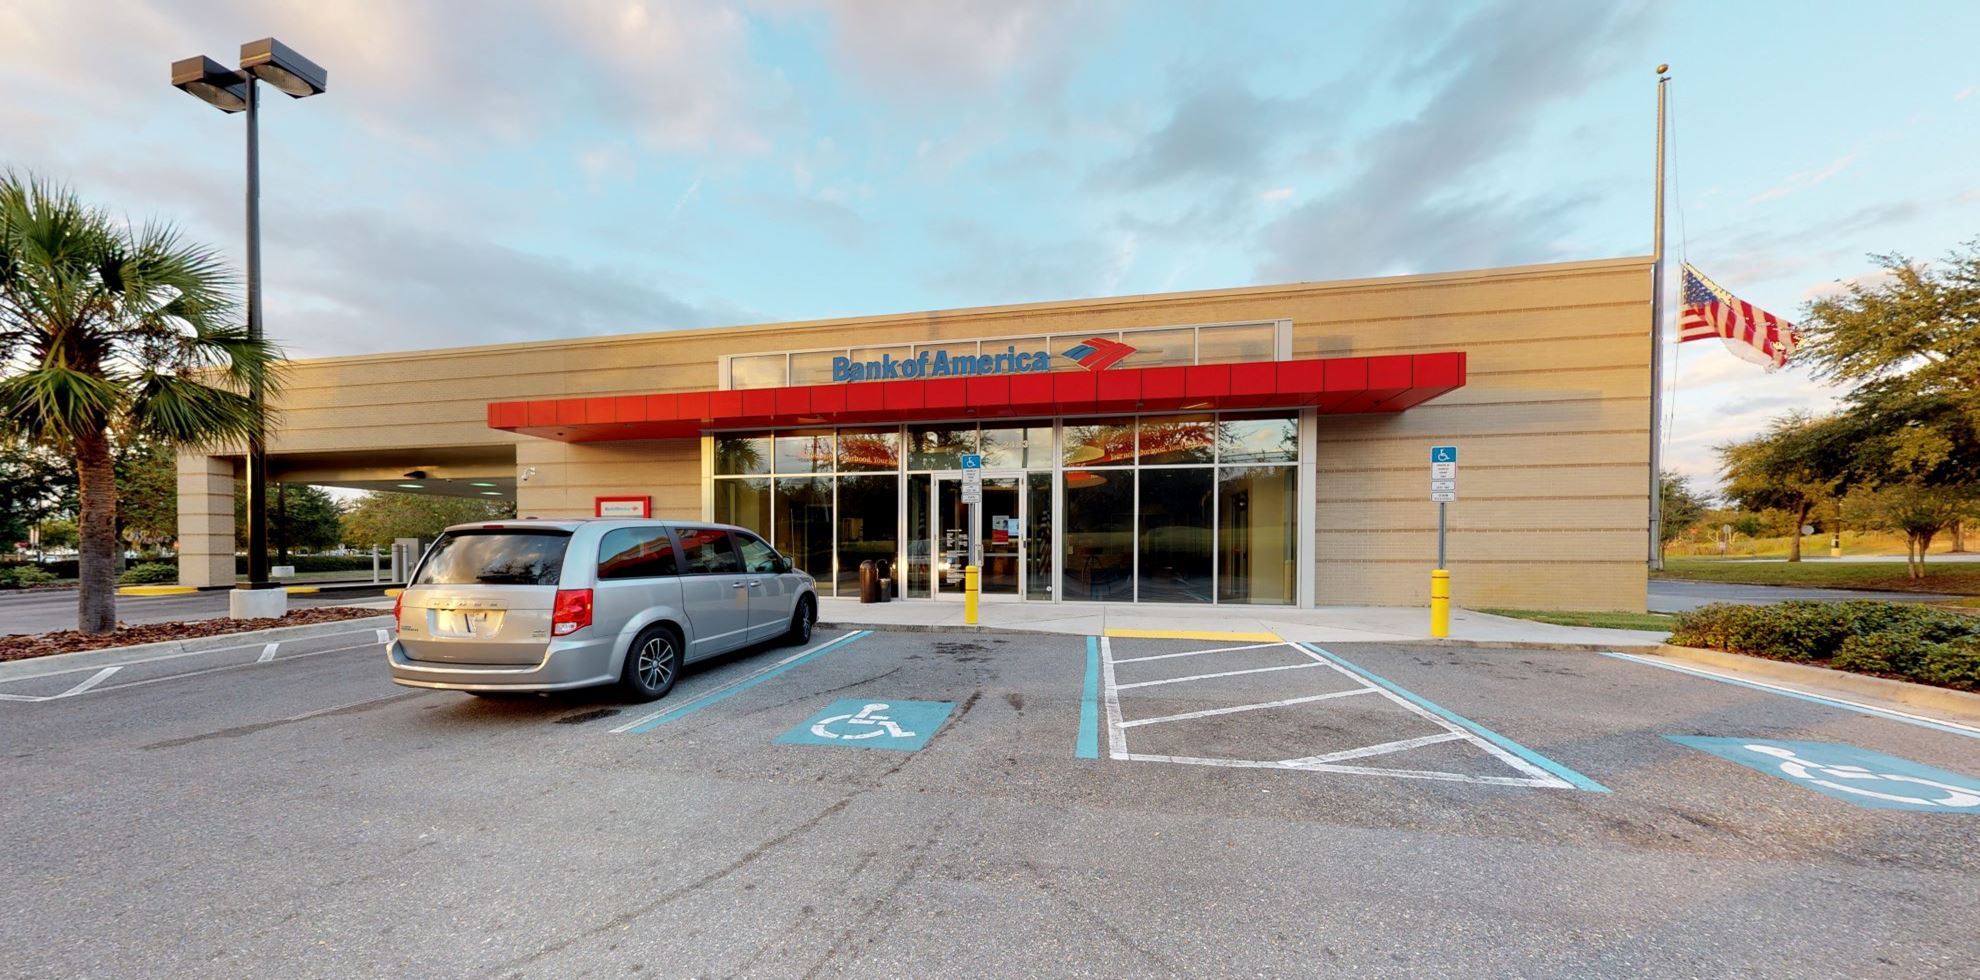 Bank of America financial center with drive-thru ATM and teller | 2483 E Gulf To Lake Hwy, Inverness, FL 34453